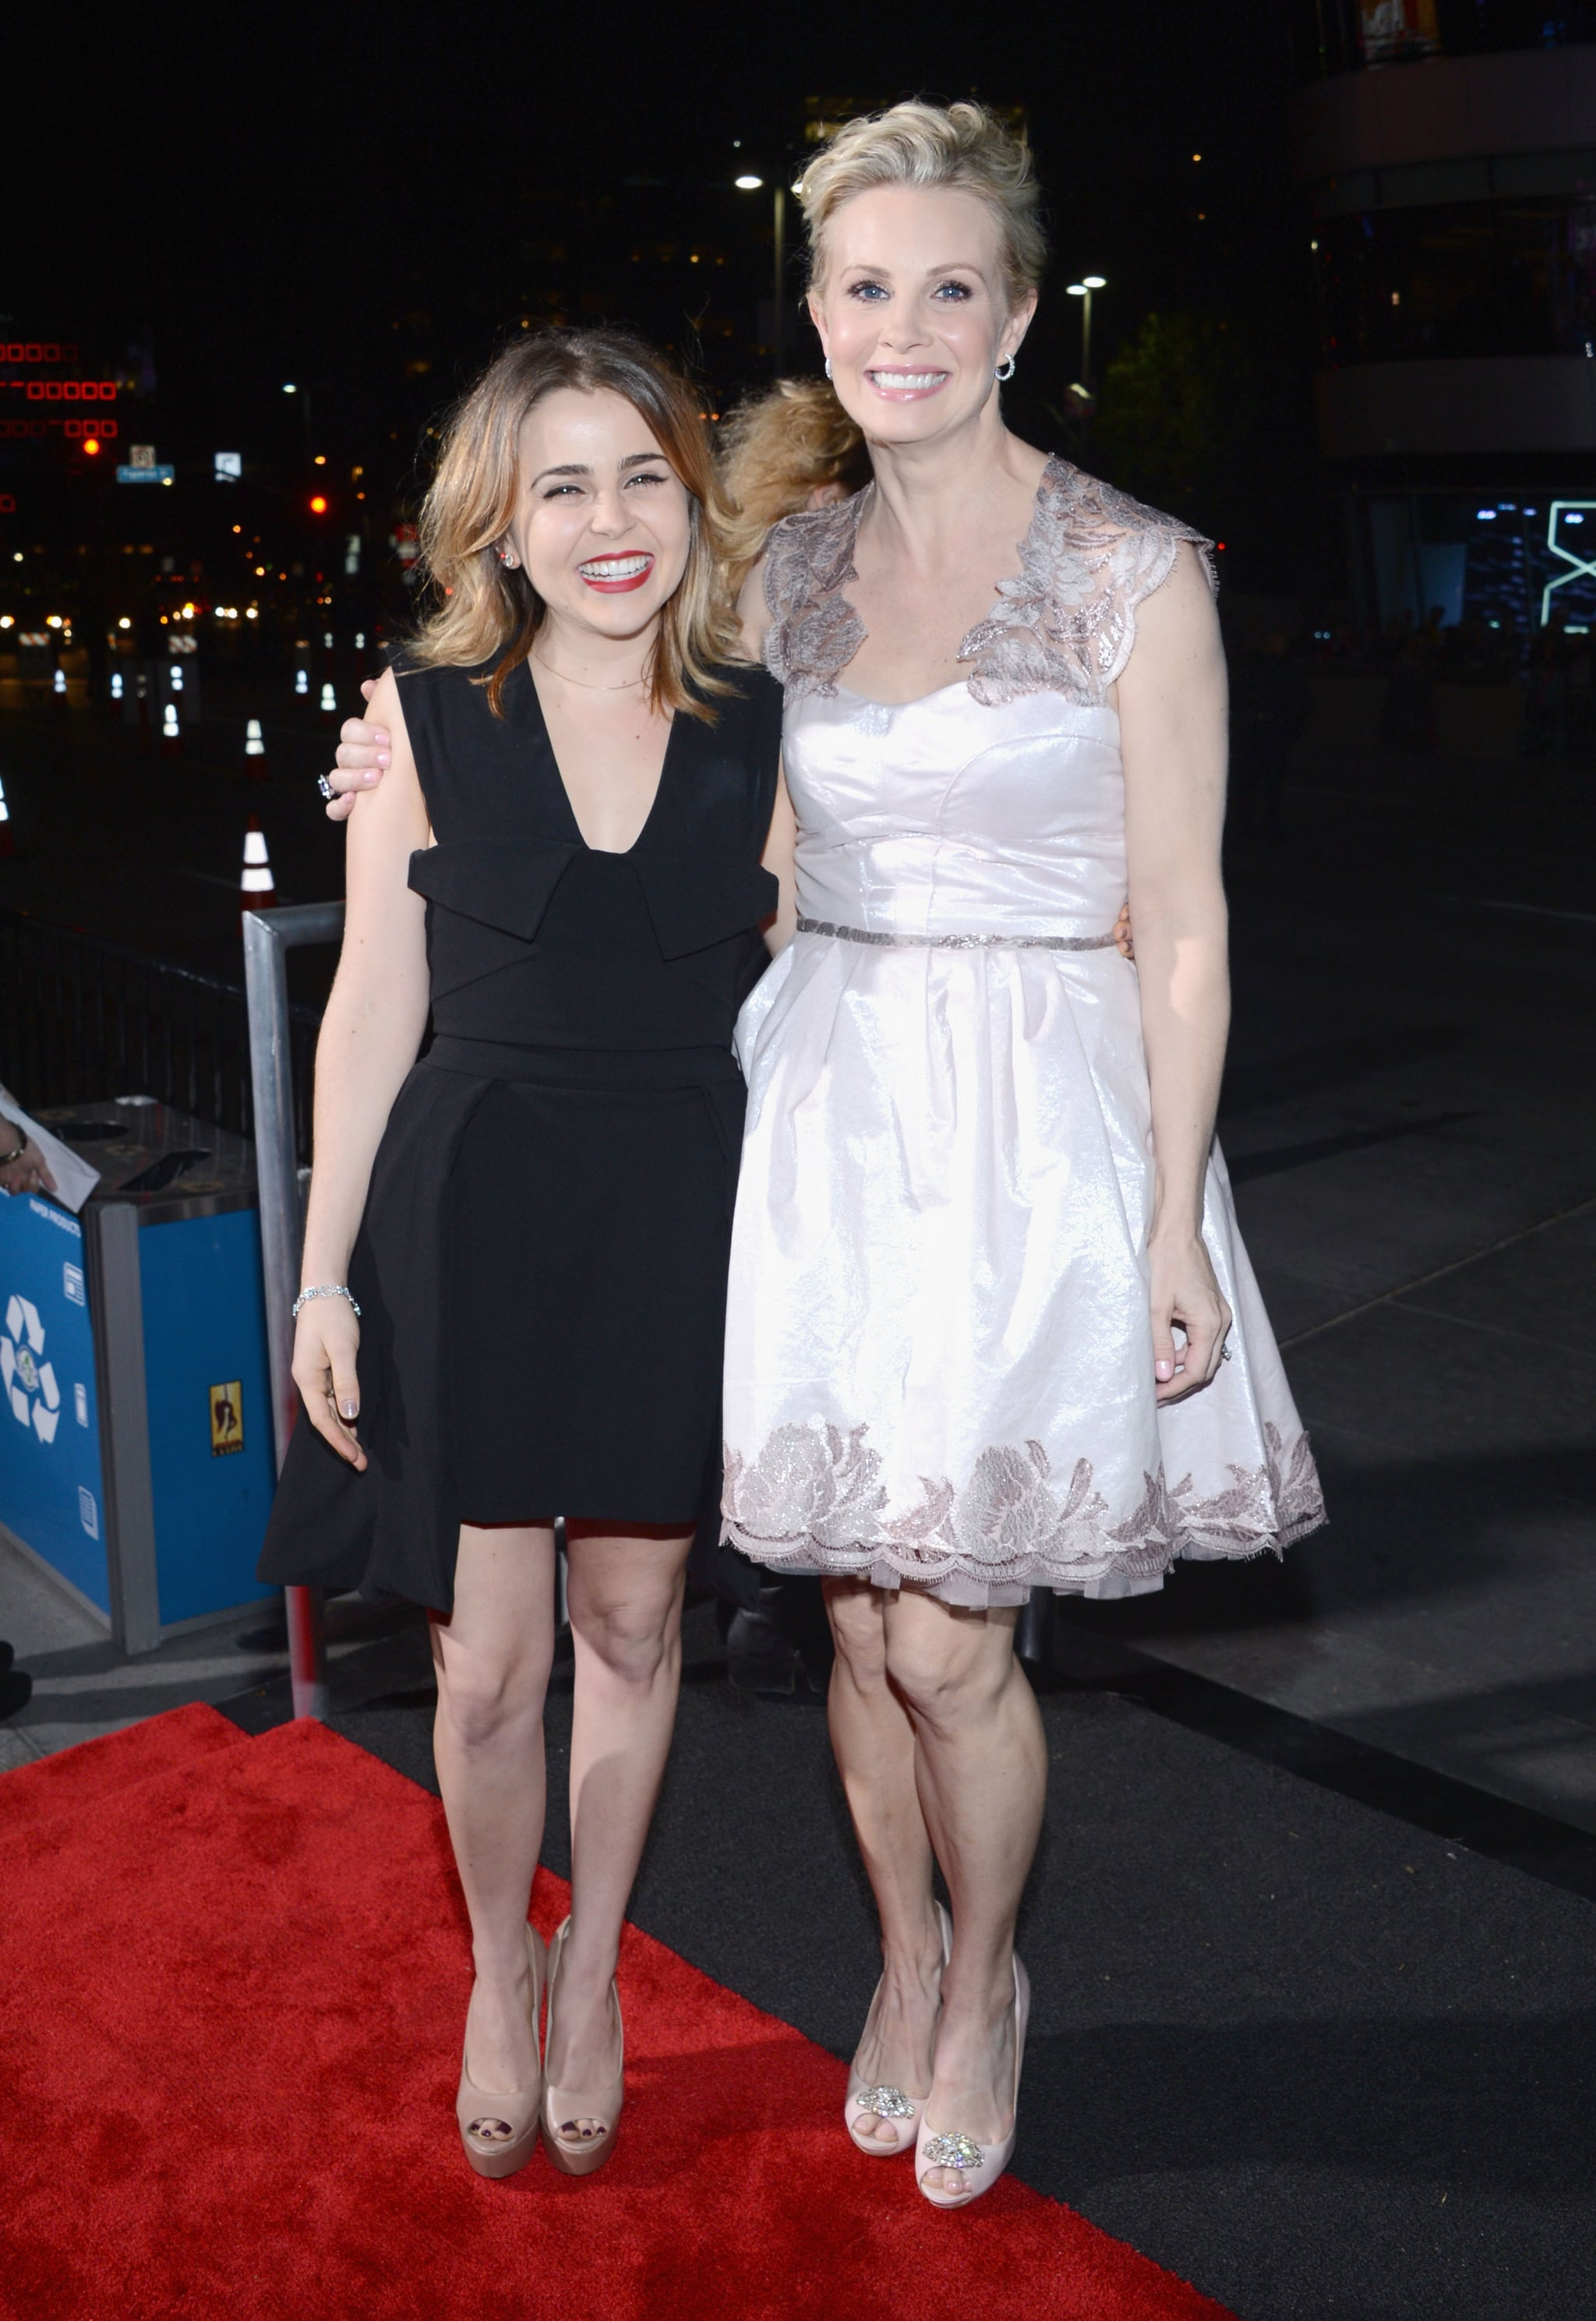 Mae Whitman and Monica Potter linked up at the People's Choice Awards.